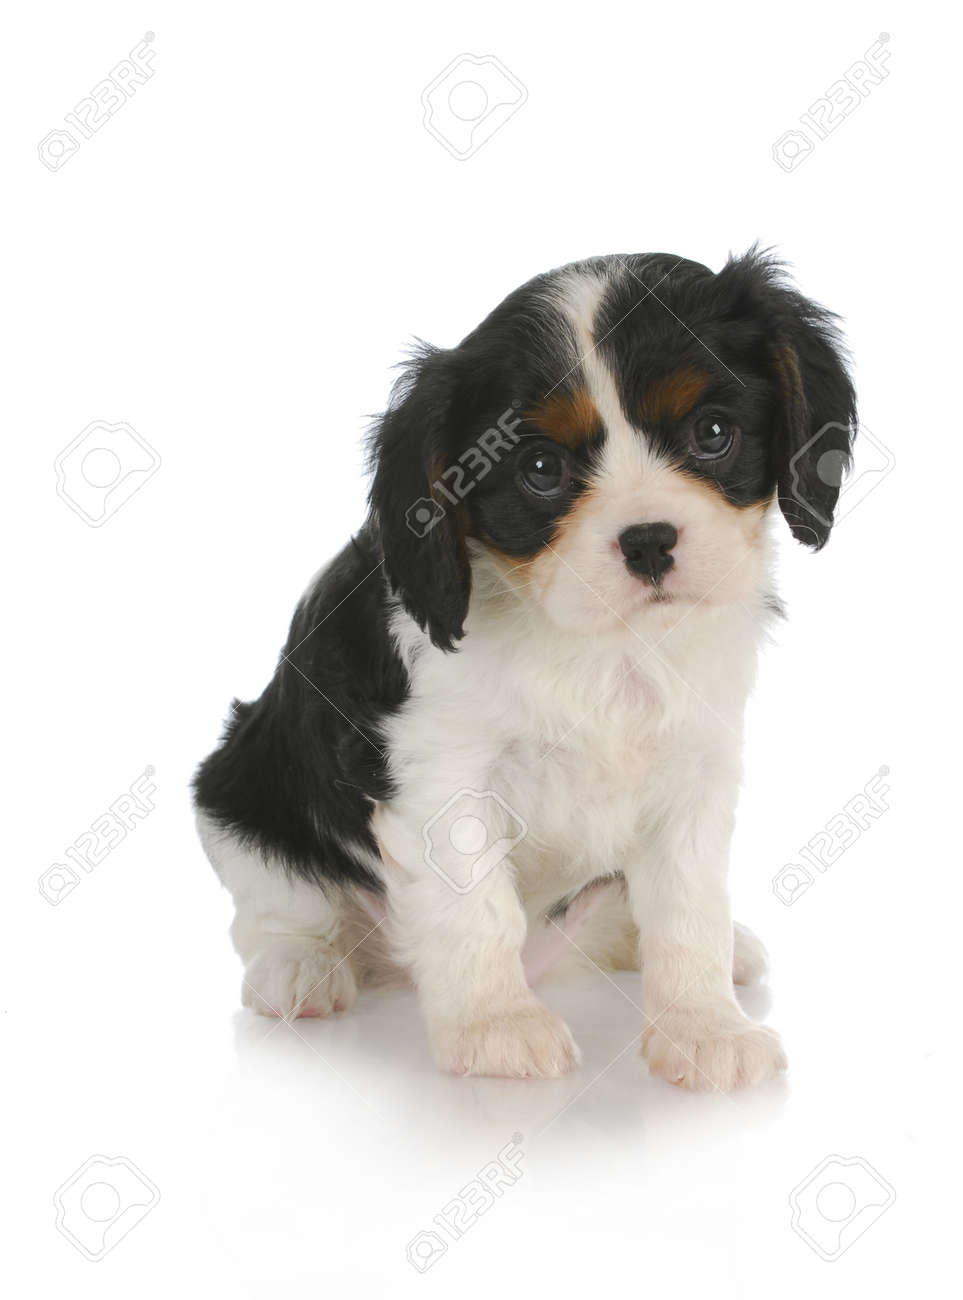 Cute Puppy Cavalier King Charles Spaniel Puppy 7 Weeks Old Stock Photo Picture And Royalty Free Image Image 12911294